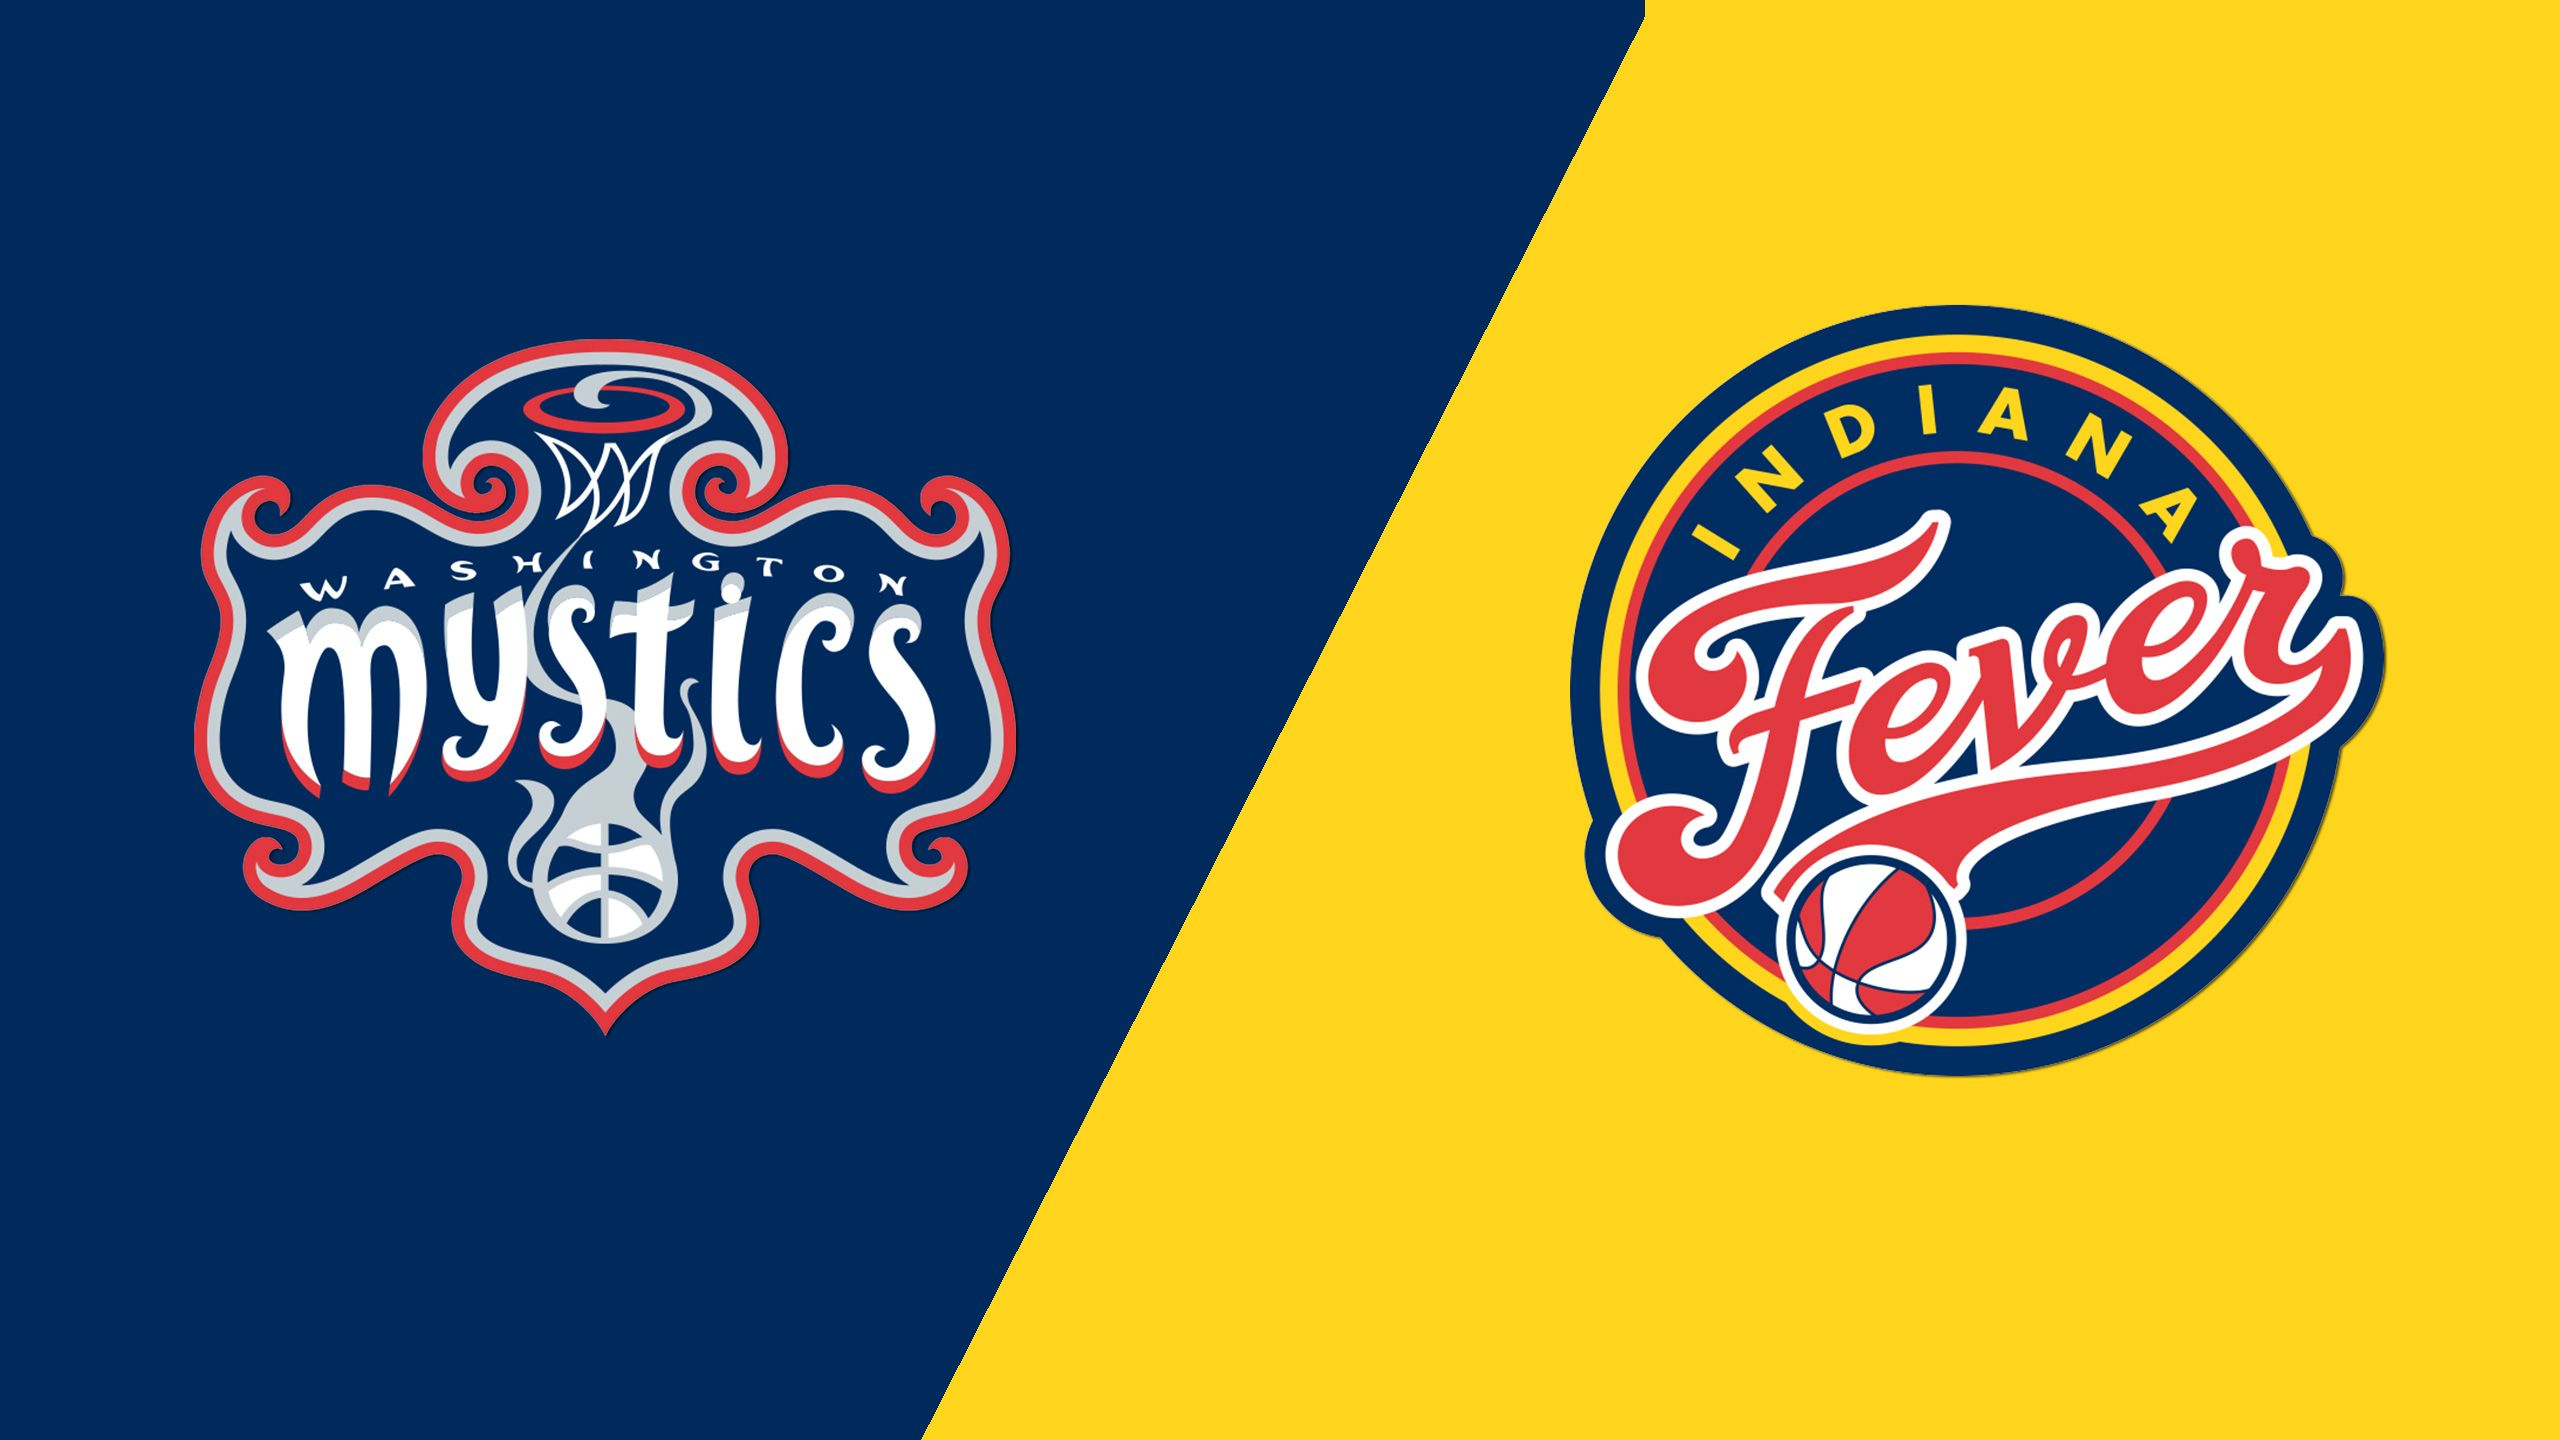 Washington Mystics vs. Indiana Fever